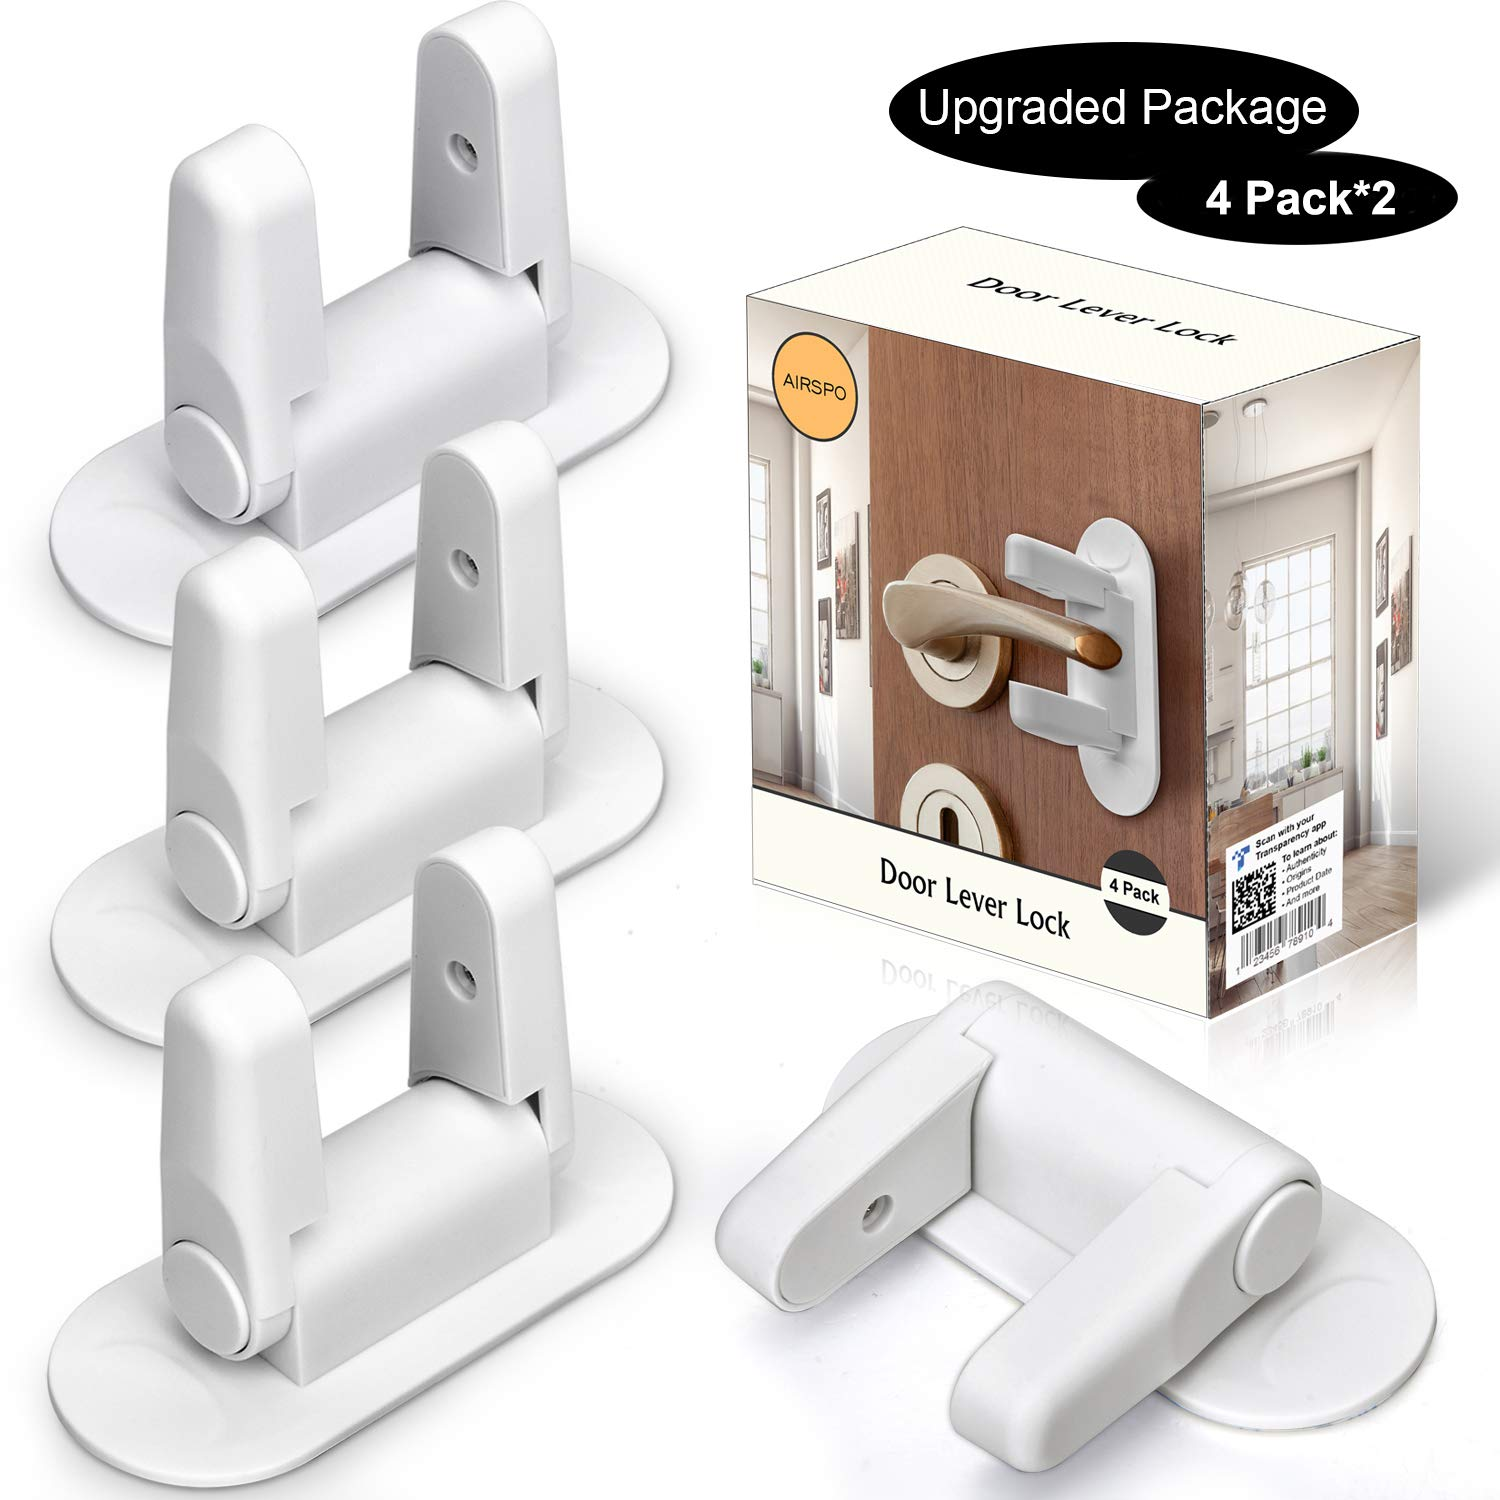 Door Lever Lock - Child/Pets Proof Door Handle Lock with 3M Adhesive - Child Safety Locks by AIRSPO (White, 8 Pack) by AIRSPO (Image #7)